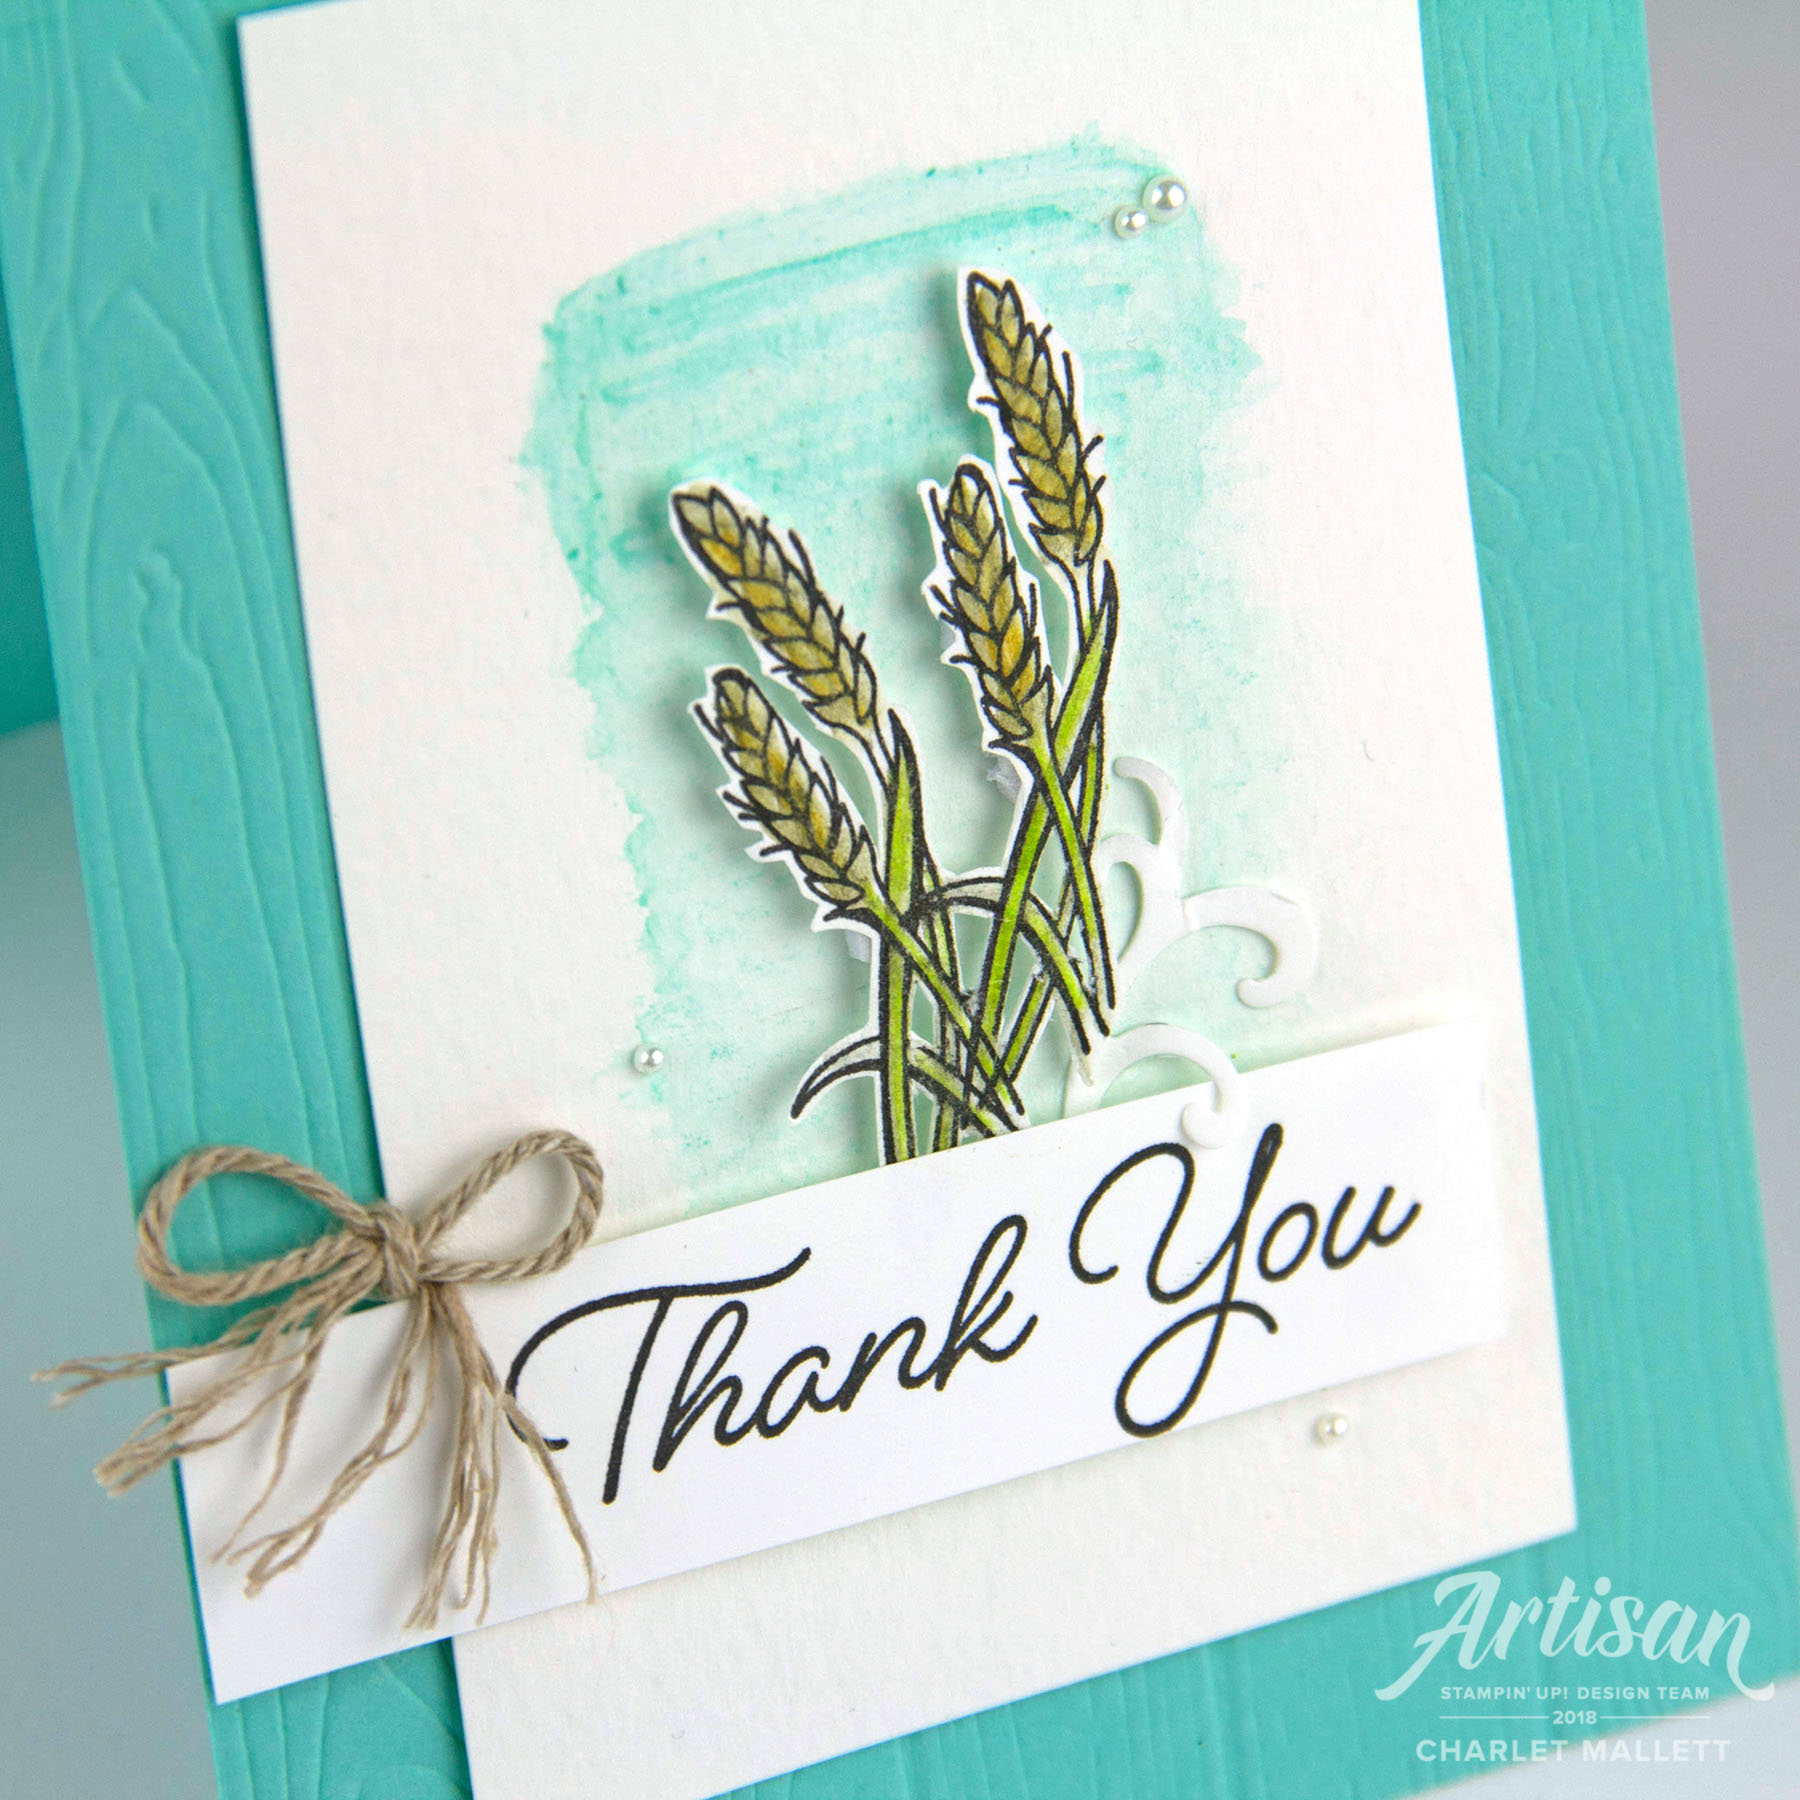 Harvest Wheat Thank You card featuring the Blended Seasons Stamp set. Charlet Mallett - Stampin' Up!